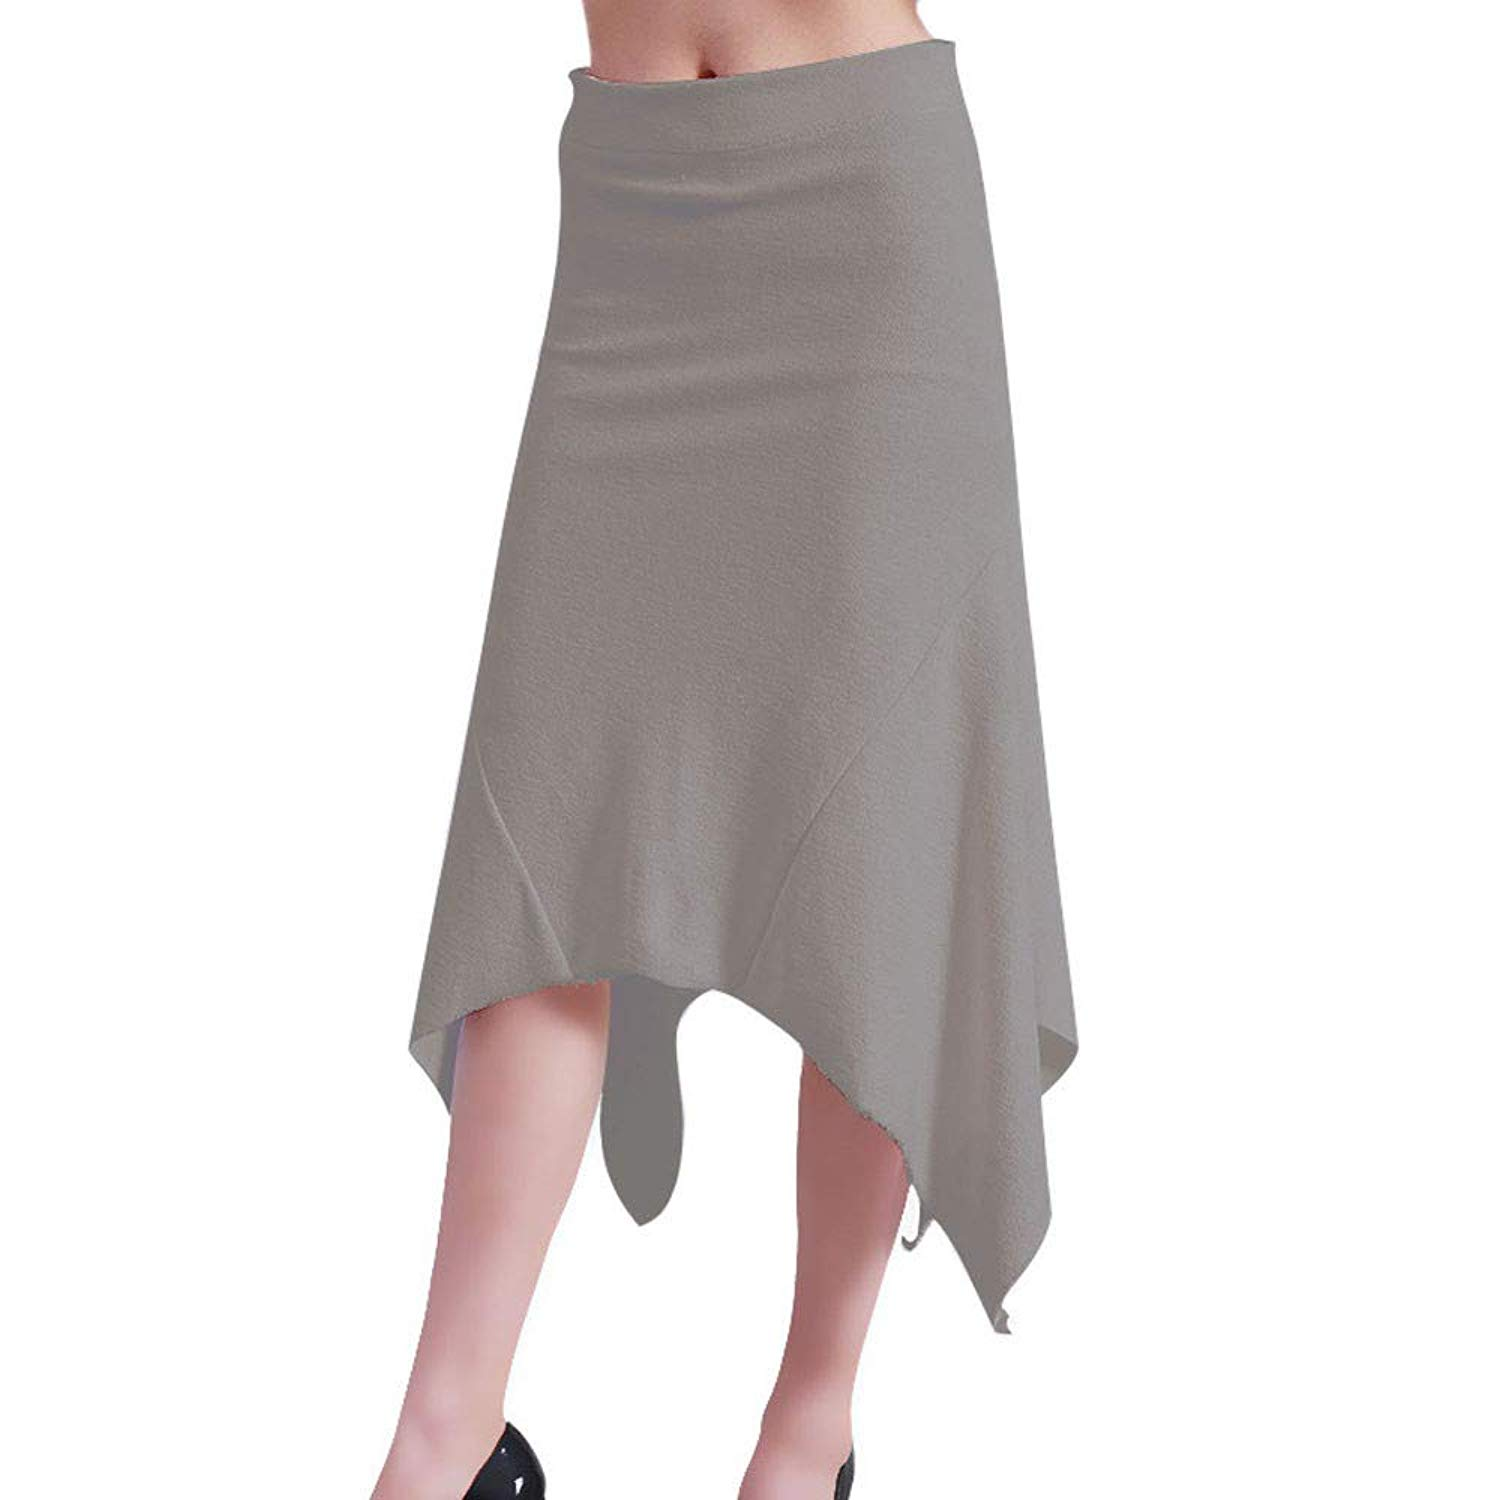 ae45c904d4 Get Quotations · Zainafacai Fashion Women's Pleated Midi Skirt Pure Color High  Waist Mid-Long Skirt Skinny